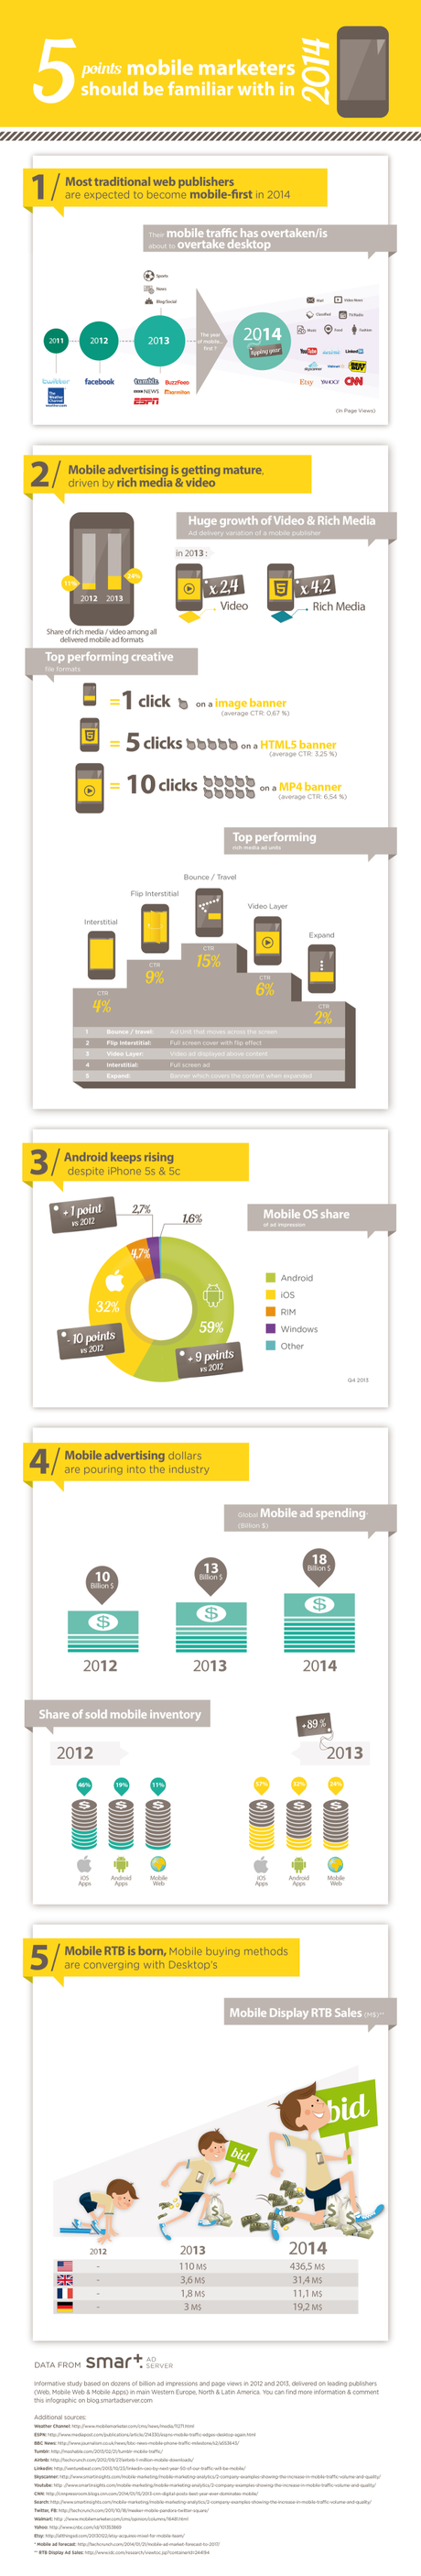 Infographic_5_points_mobile_marketers_should_know